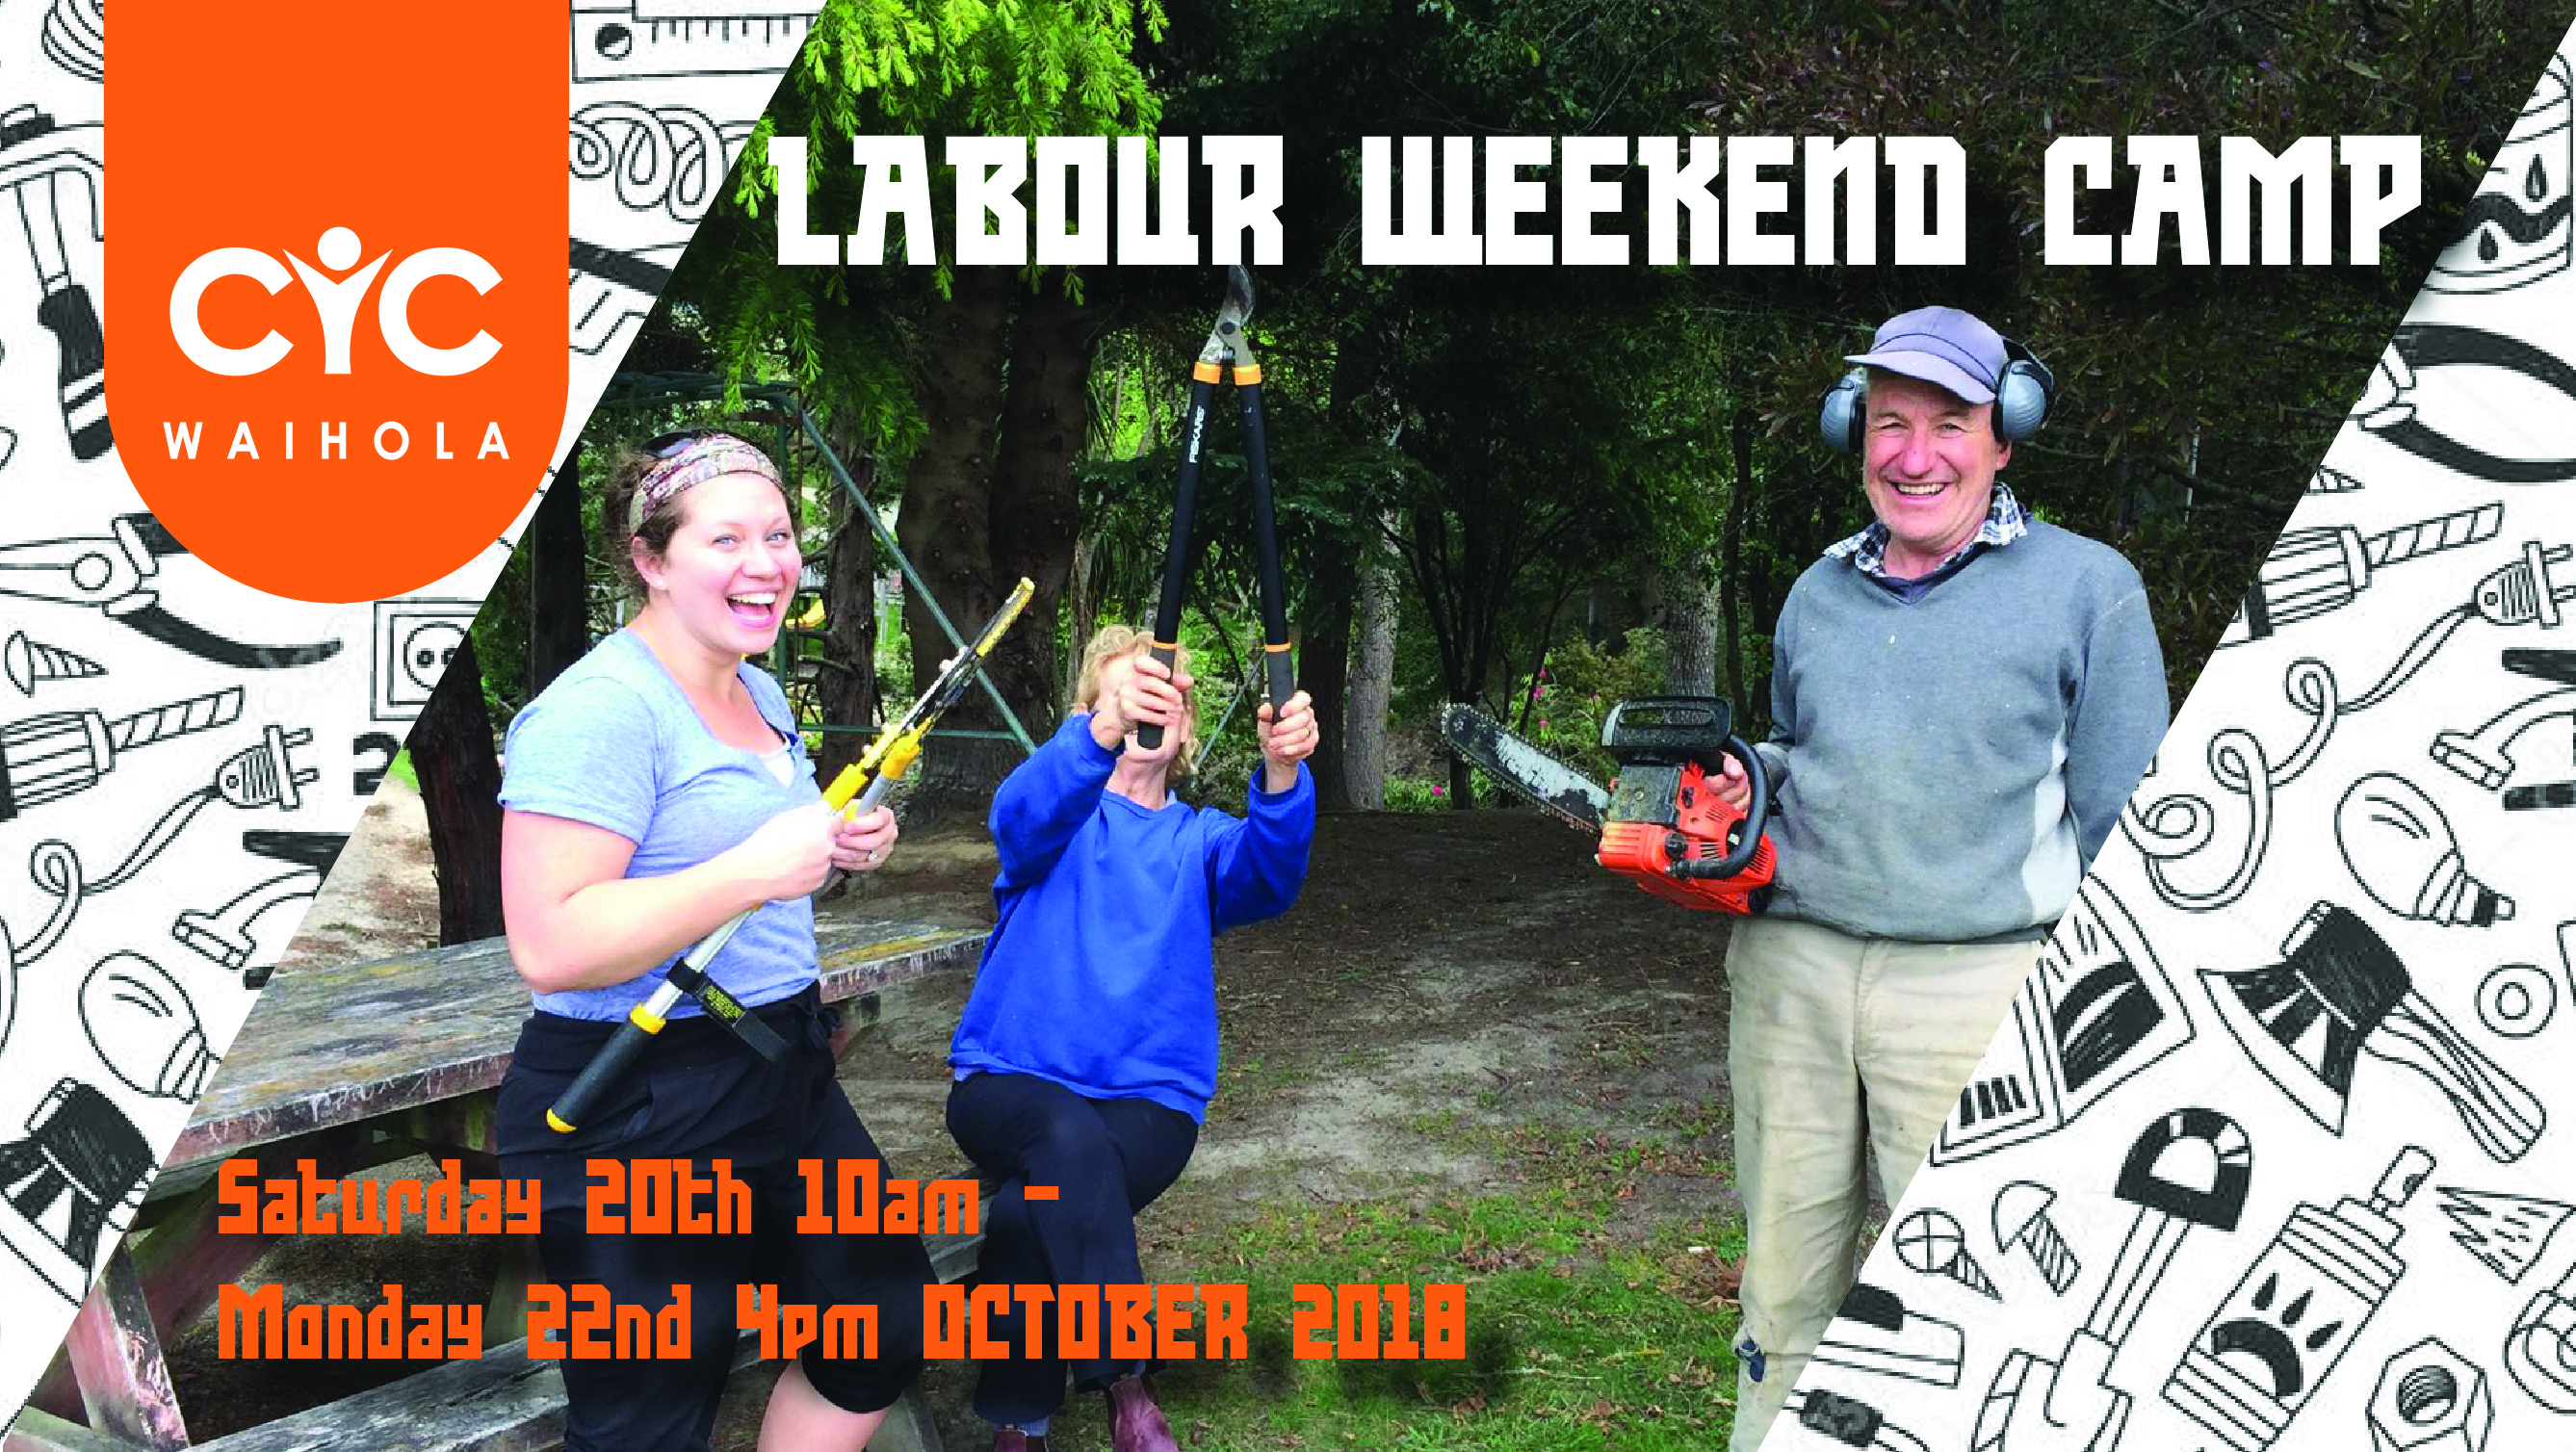 Labour Weekend Camp 2018